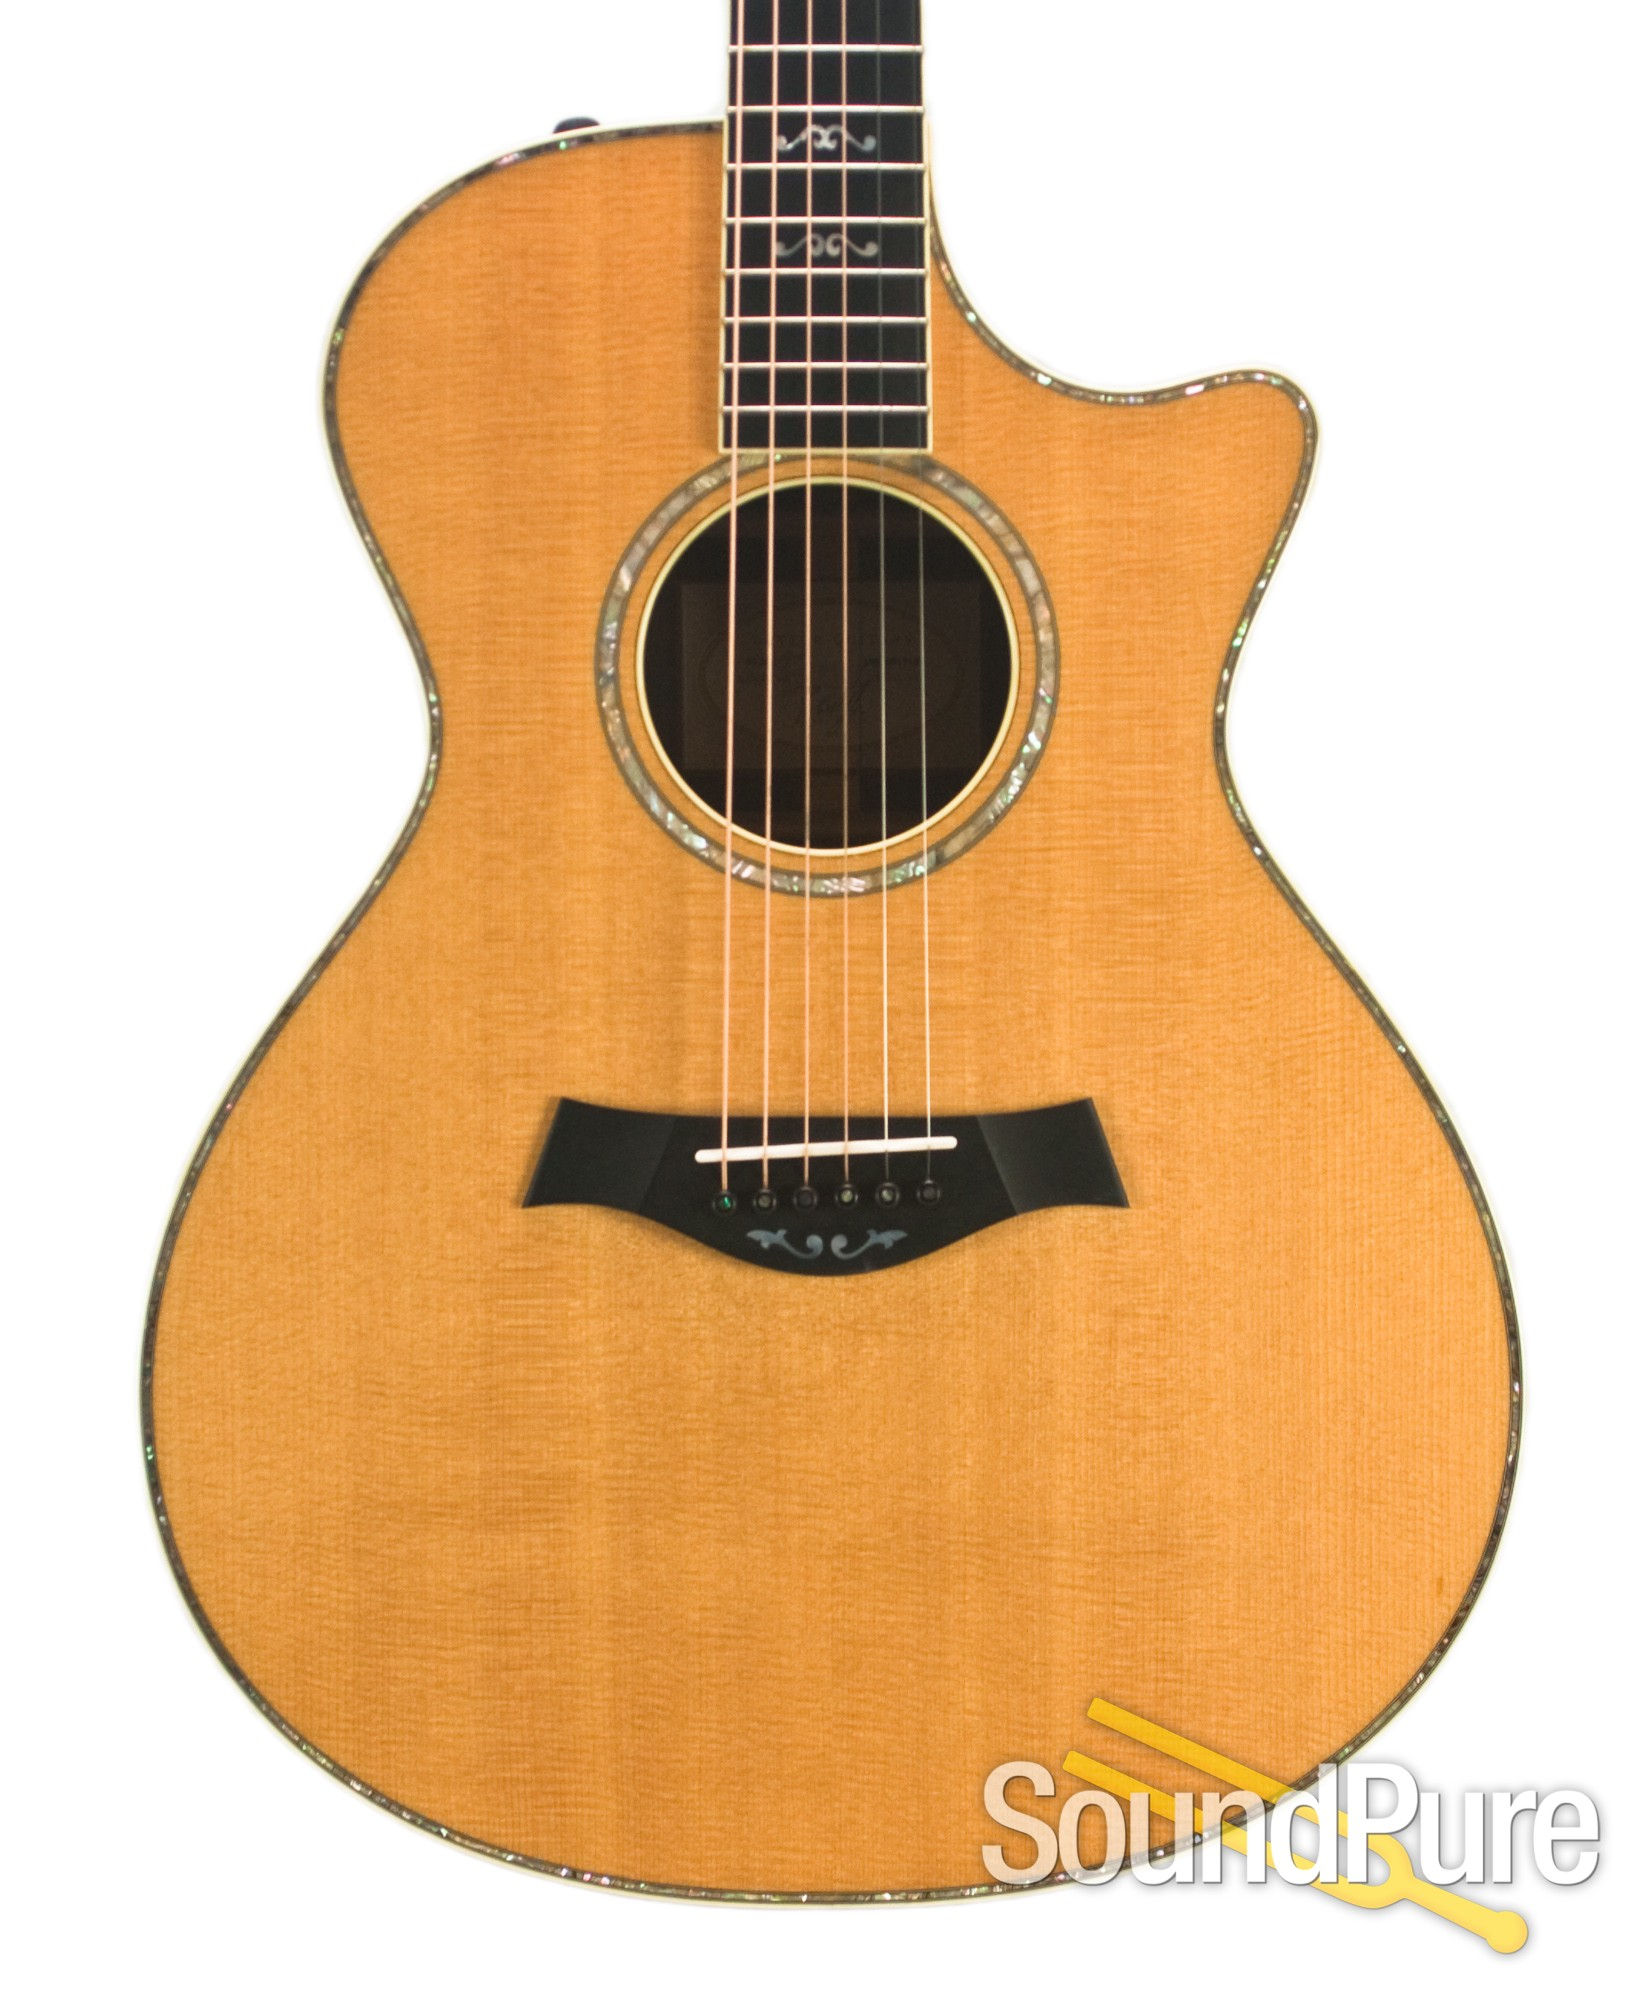 Warriors Imagine Dragons Electric Guitar Tab: Taylor 2007 912CE Acoustic/Electric Guitar - Used